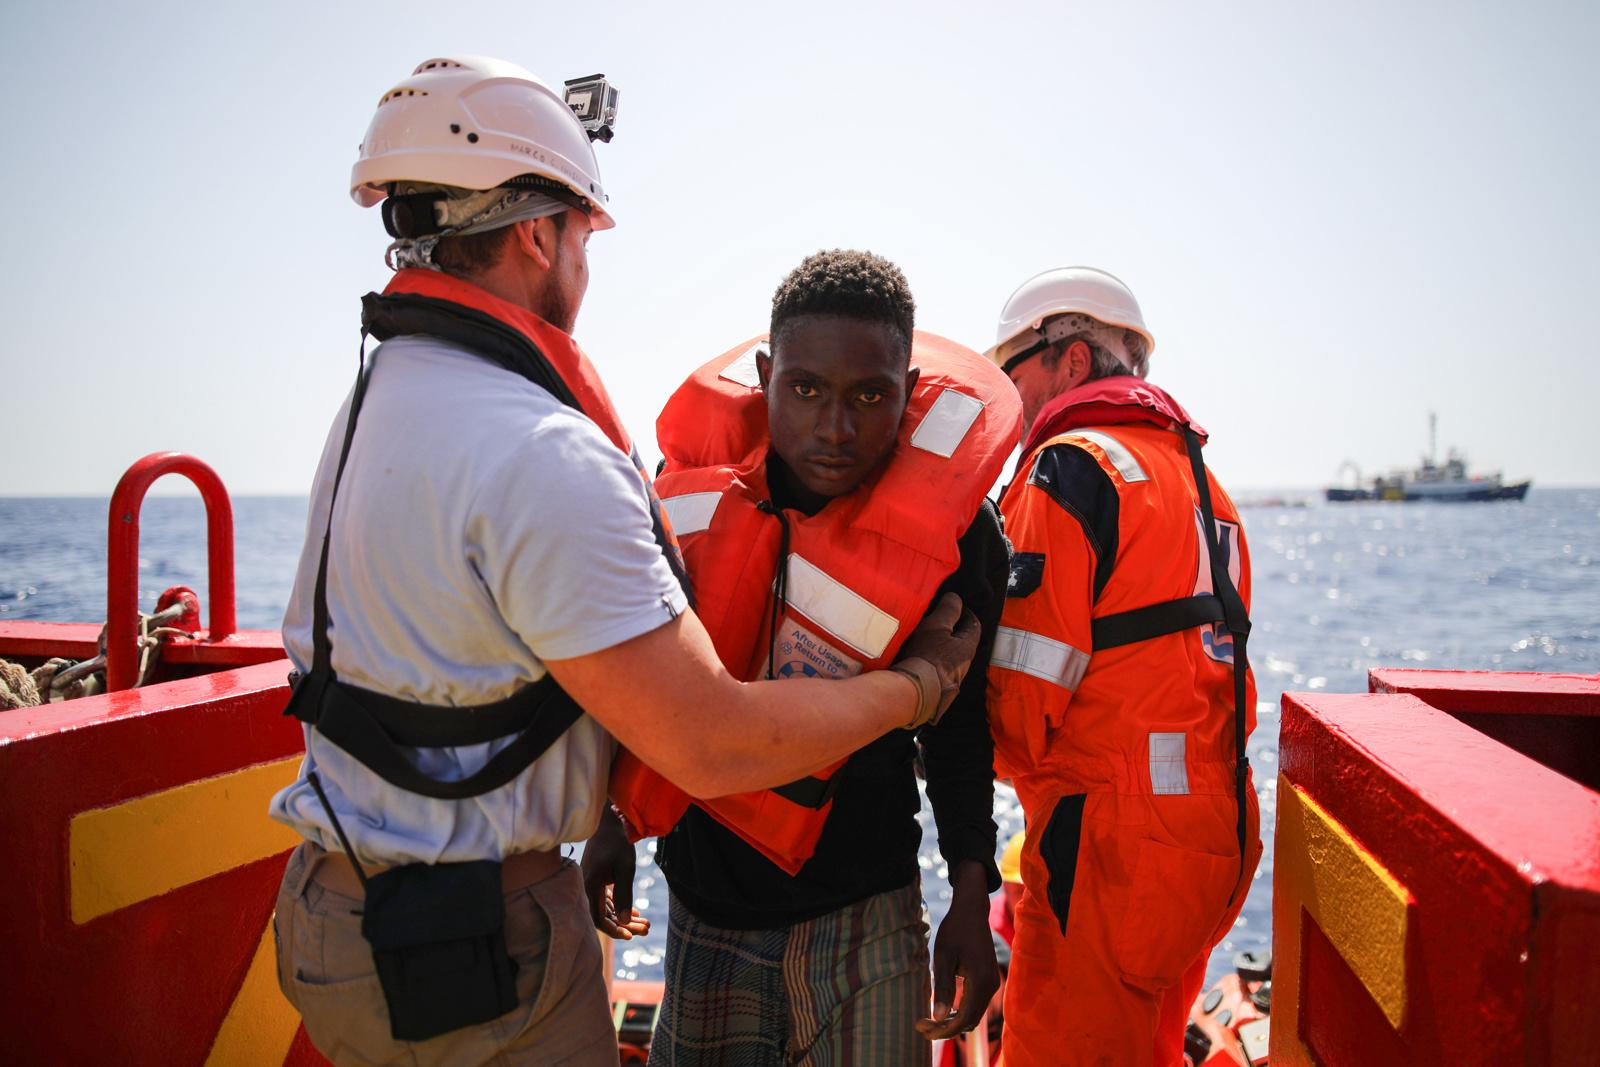 A refugee is taken on deck of the rescue vessel 'VOS Hestia', shortly after having been rescued from a dinghy on the Mediterranean sea off the Libyan coast, June 03, 2017. Severe burns stretch over the body of one refugee (left), due to a dangerous mixture of salt water and leaking fuel accumulating in the bottom of the small and overcrowded dinghies. The sea journey took the lives of four migrants. The Central Mediterranean route is the world's deadliest migration route. Of the estimated 3,080 people that have died or gone missing while trying to reach Europe by sea via the three Mediterranean routes until end of November 2017, over 94% of deaths have occurred from North Africa to Italy, according to UNHCR. Over 117,000 refugees and migrants arrived in Italy by sea in 2017, about 32% less compared to 2016.